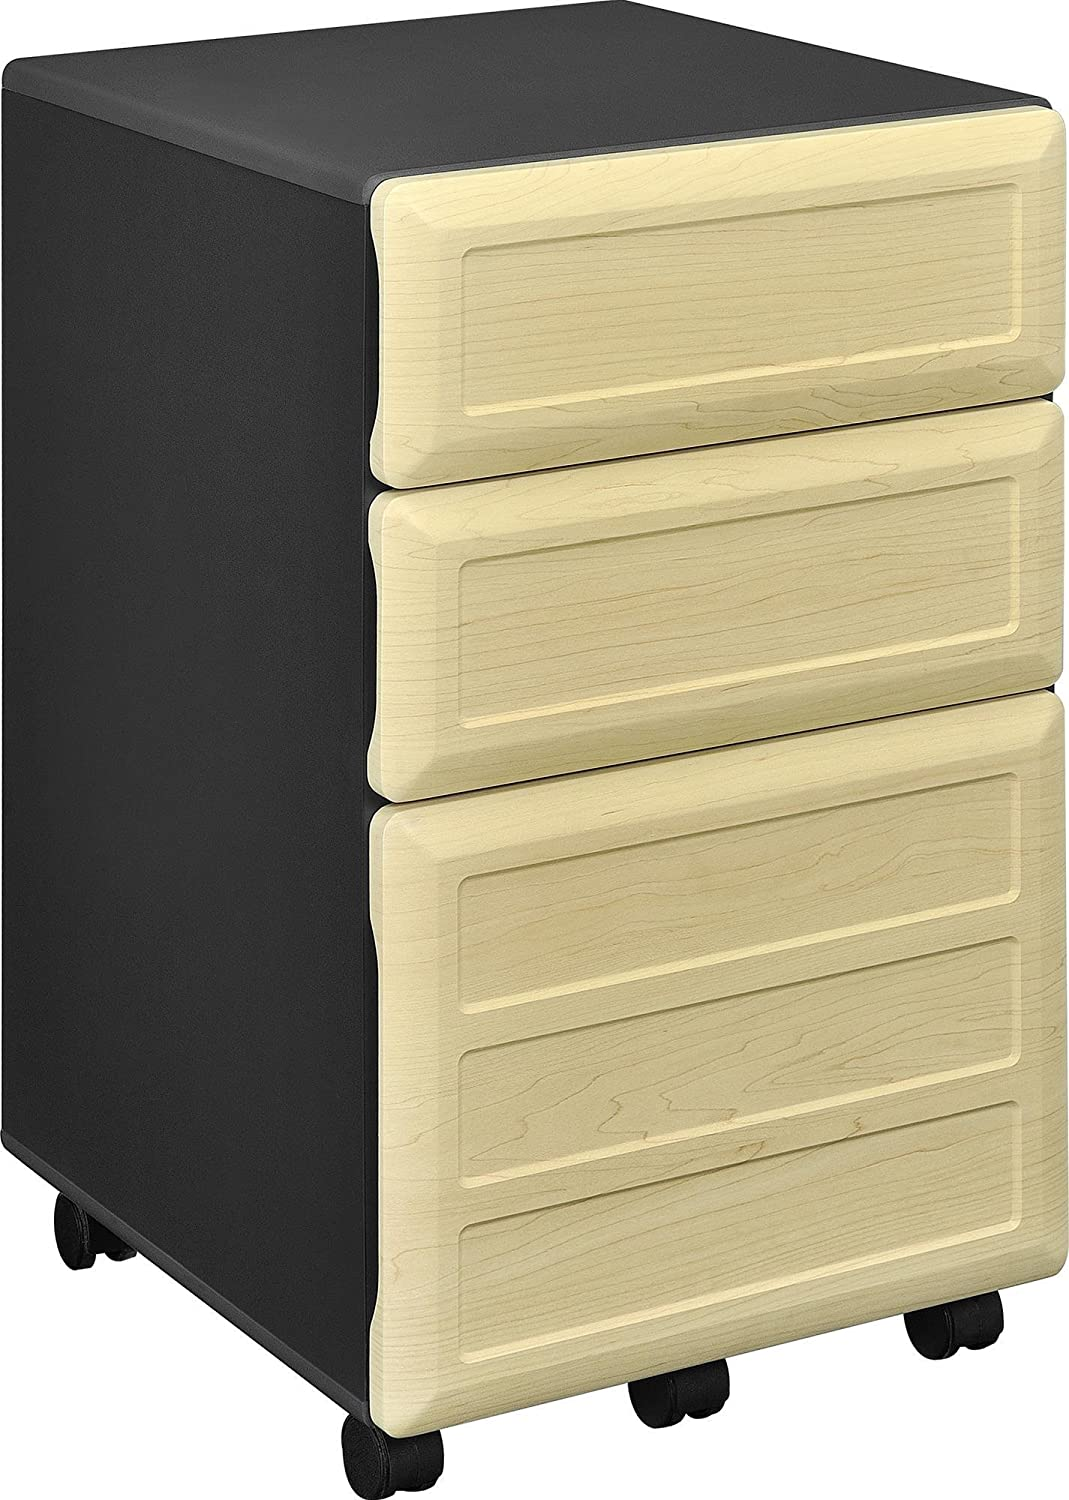 Ameriwood Home Pursuit Mobile File Cabinet, White Dorel Home Furnishings 9523296